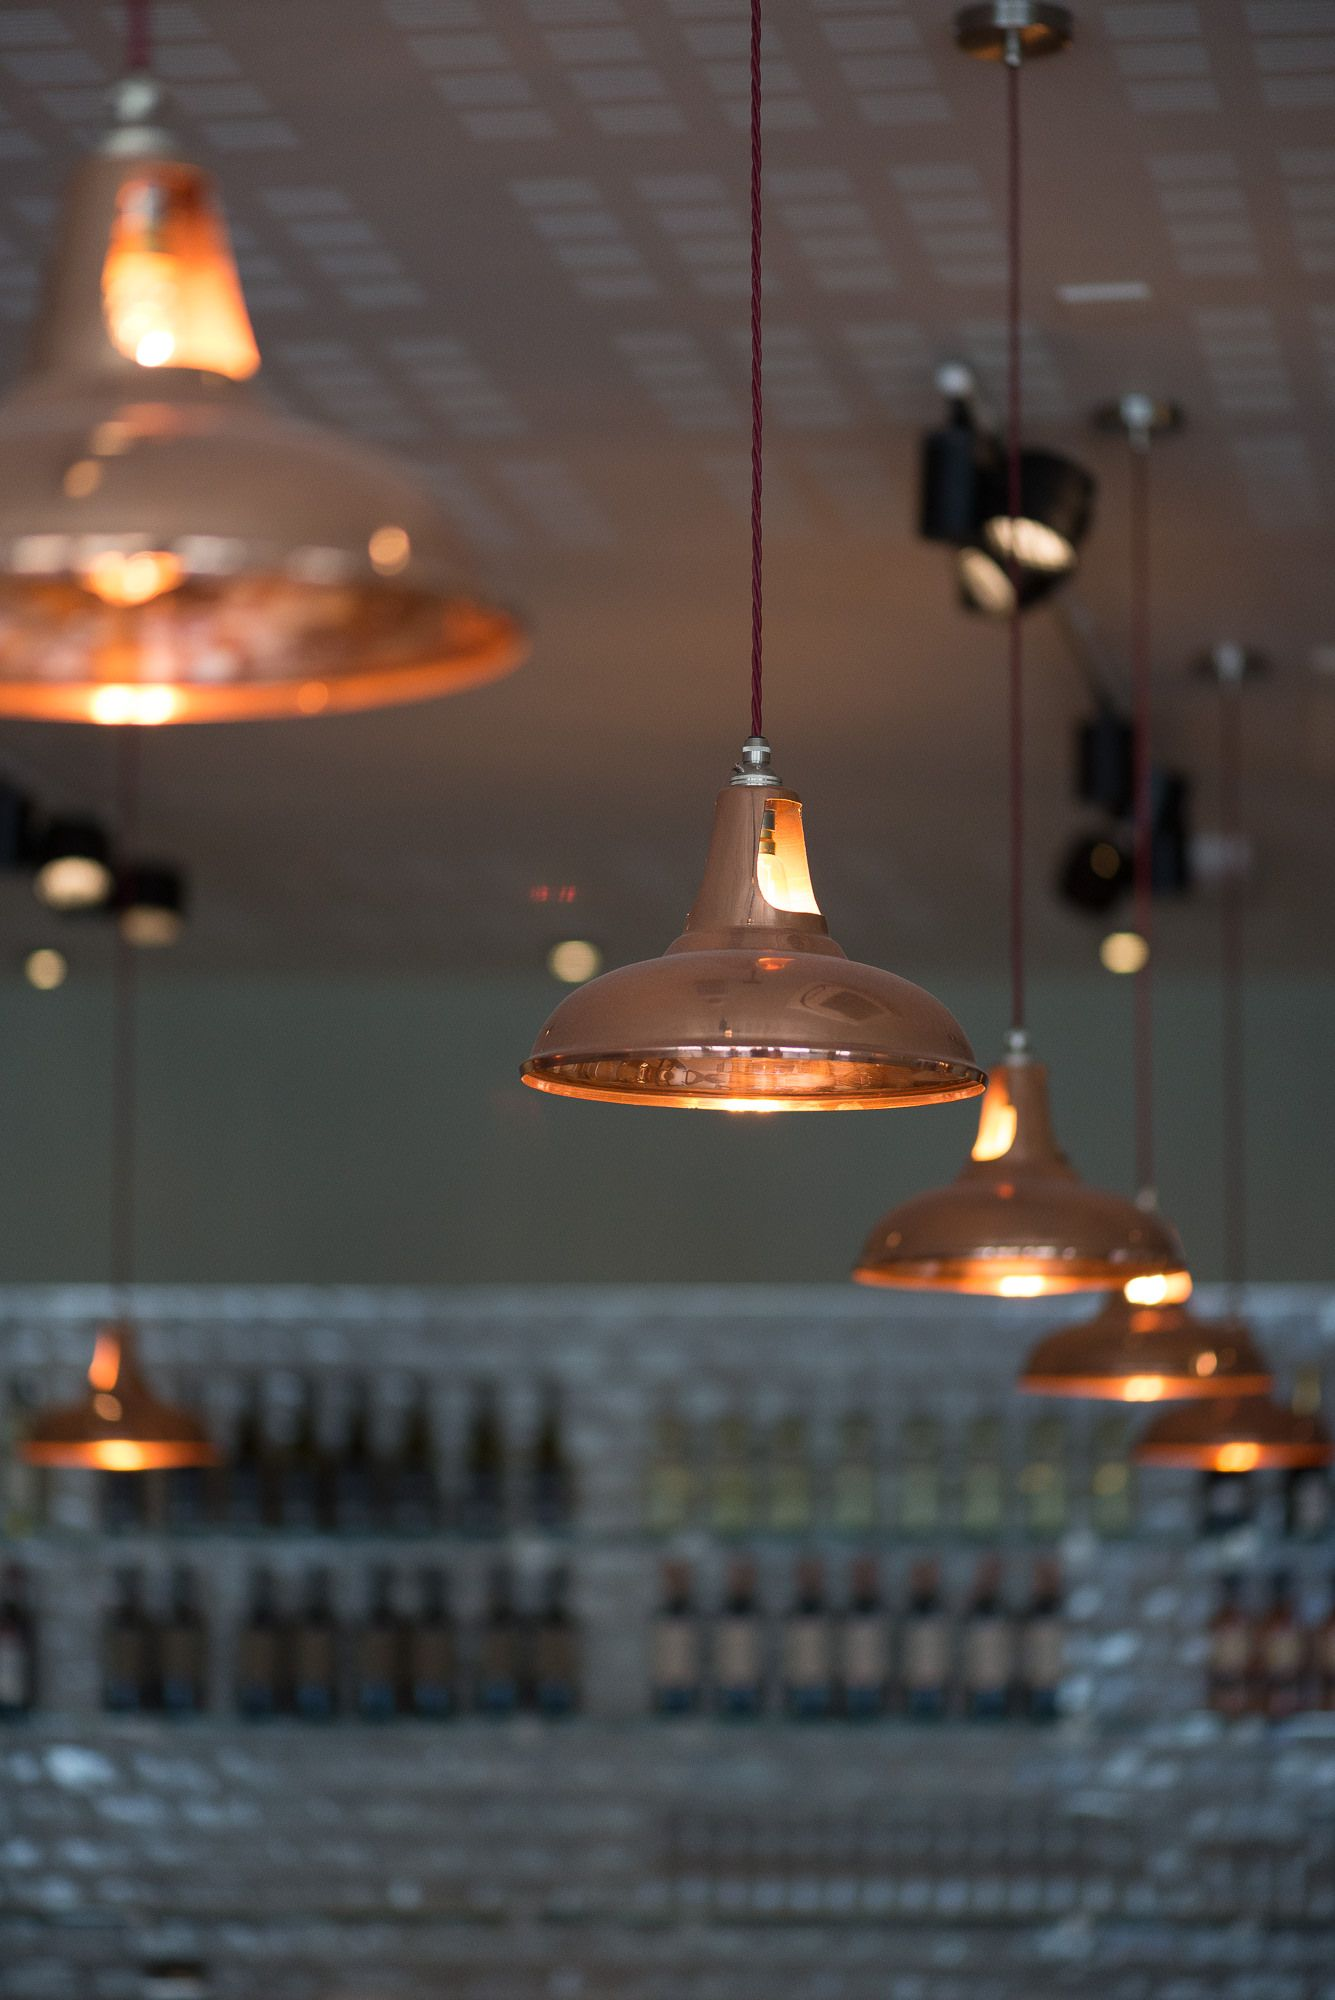 Copper Coolicon Pendant Lights In Pizza Express Bristol